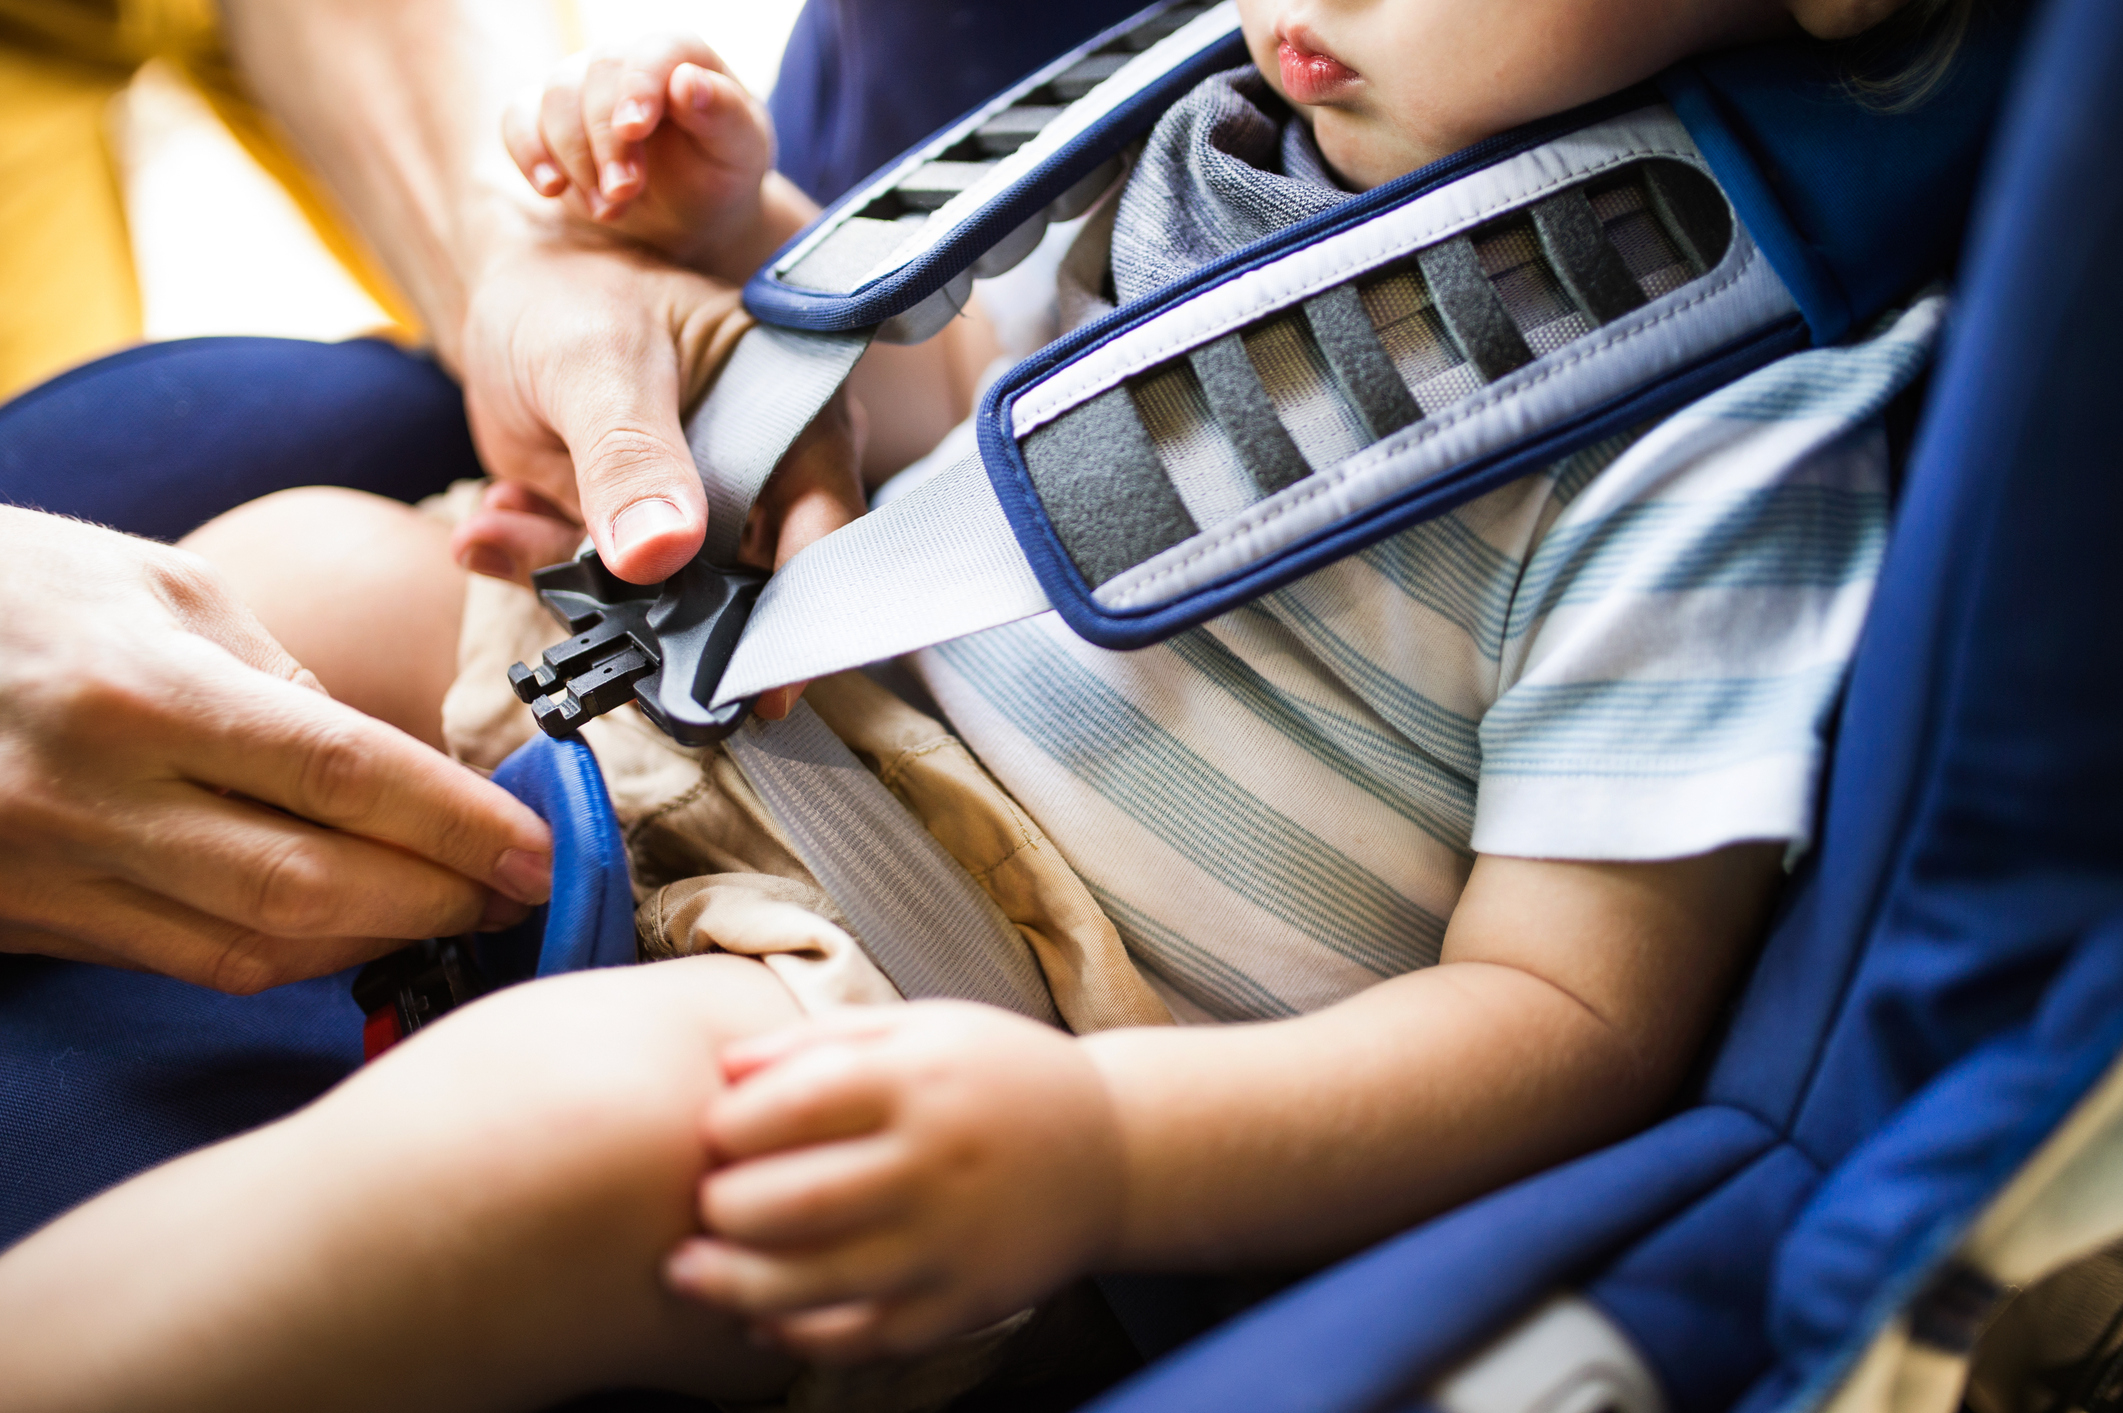 Baby Car Seat Fitting Service Thousands Of Parents Putting Kids At Risk By Not Fitting